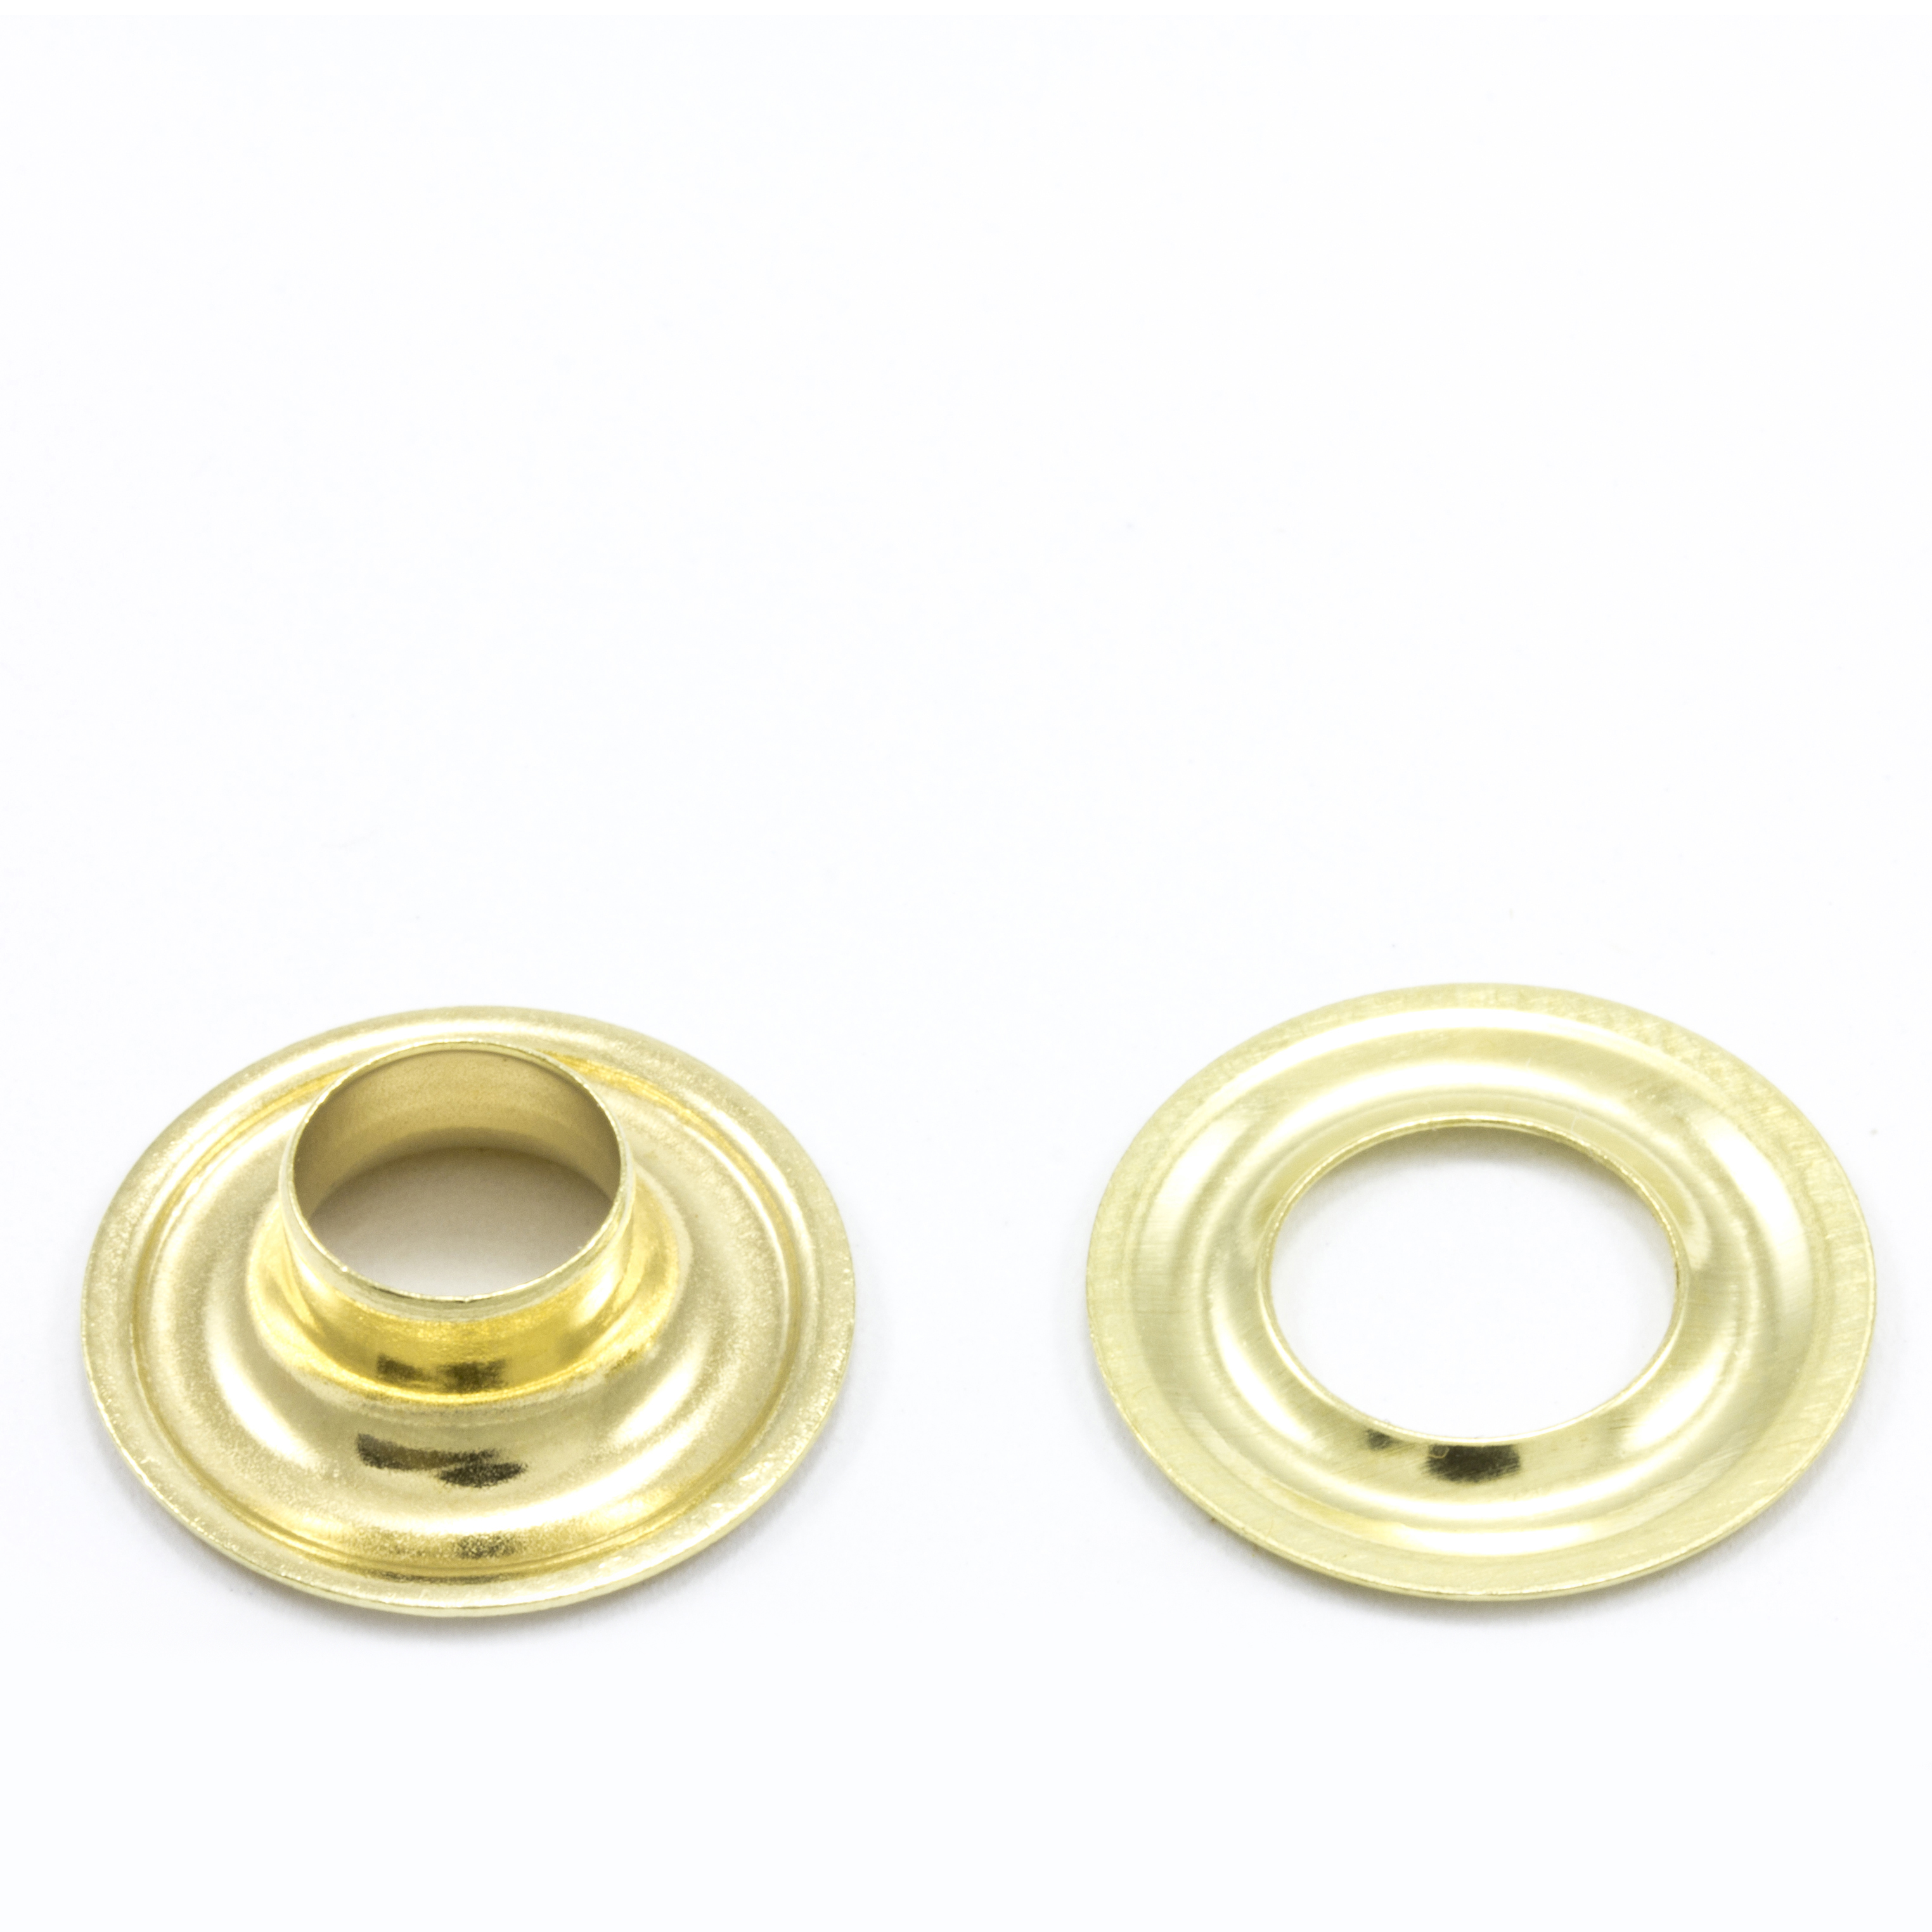 Grommet with Plain Washer #1 Brass 9/32